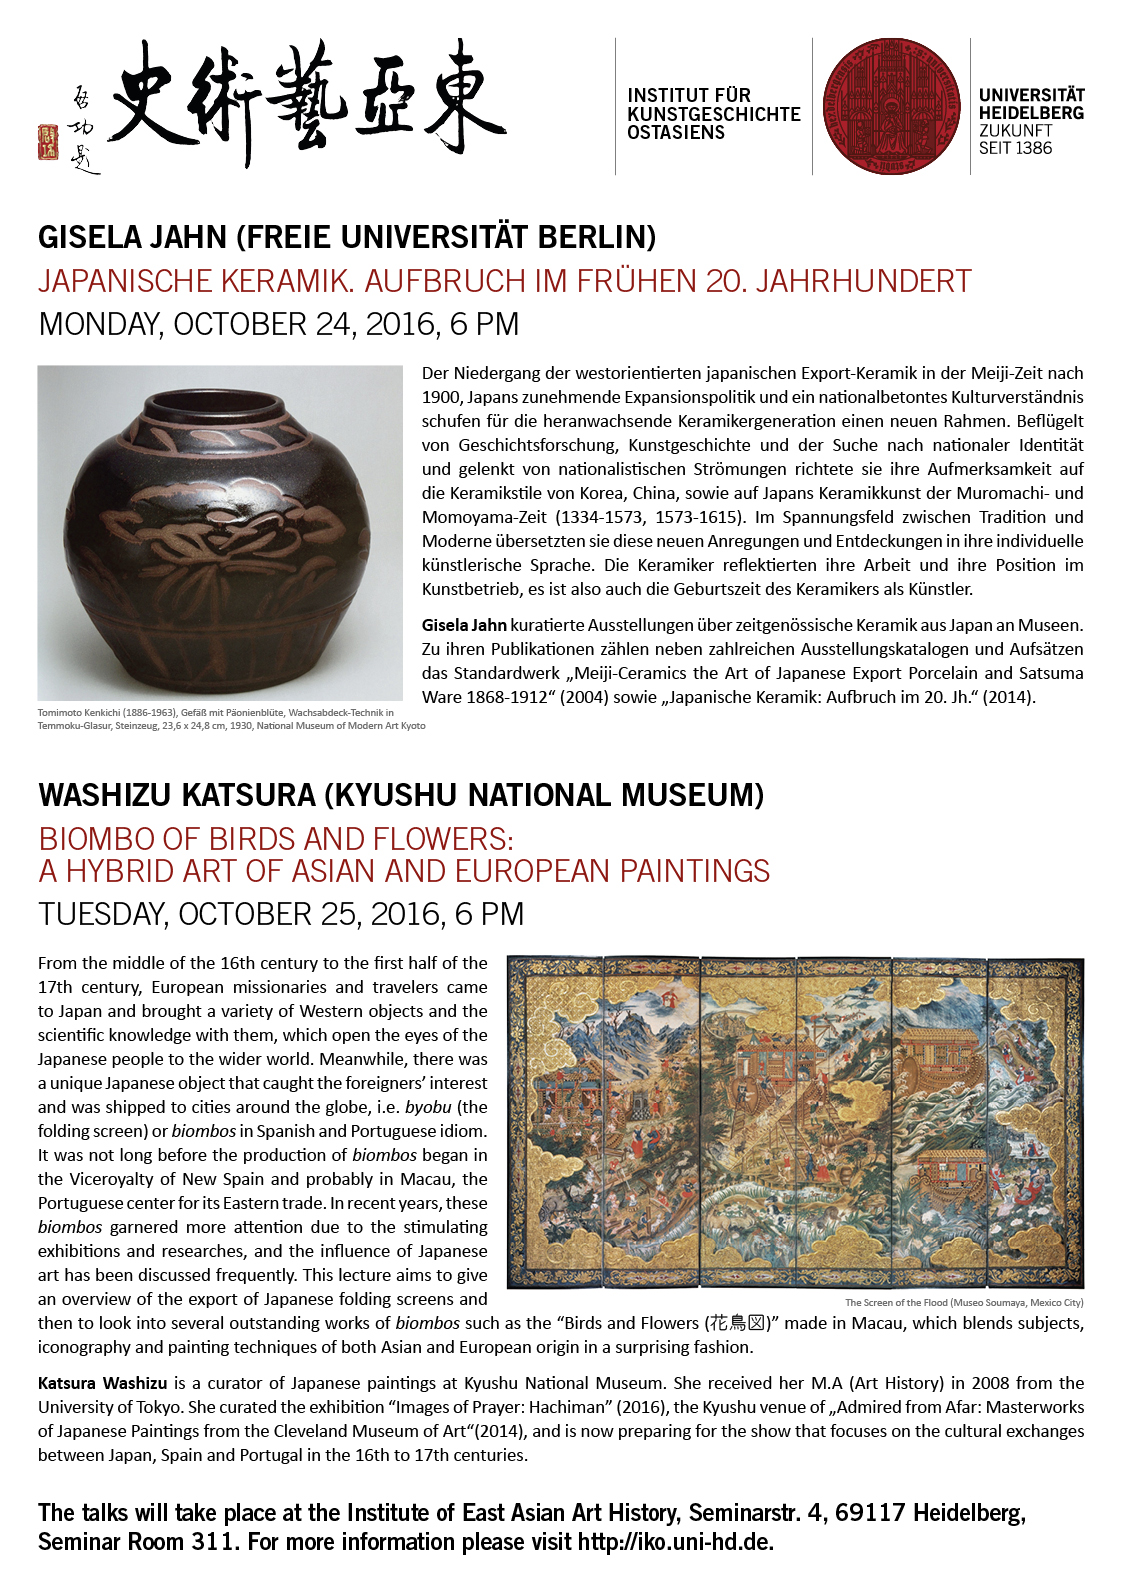 25. Oktober 2016 | Katsura Washizu: Biombo of Birds and Flowers: A hybrid Art of Asian and European Paintings